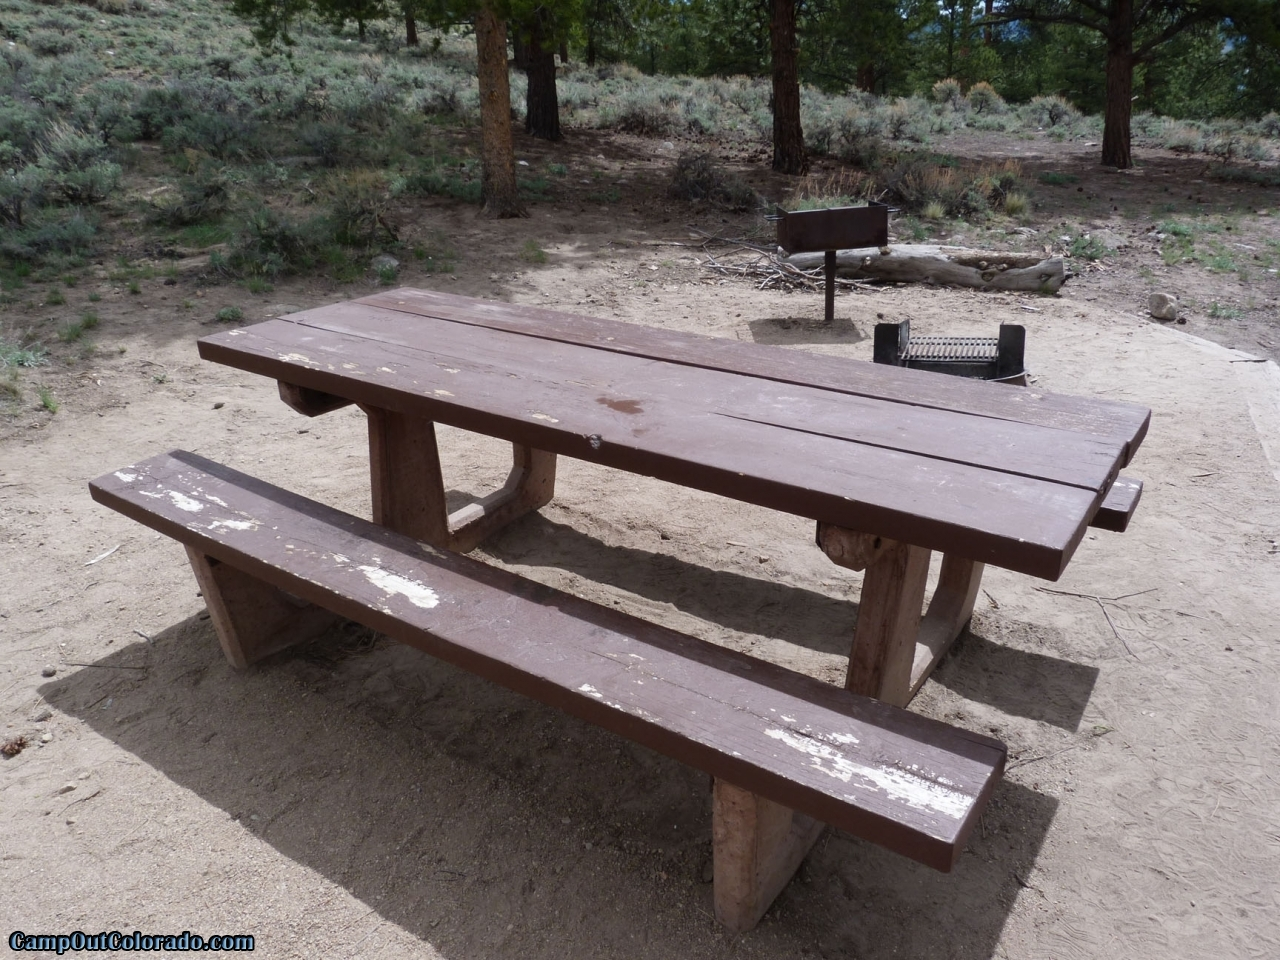 camp-out-colorado-lakeview-campground-table